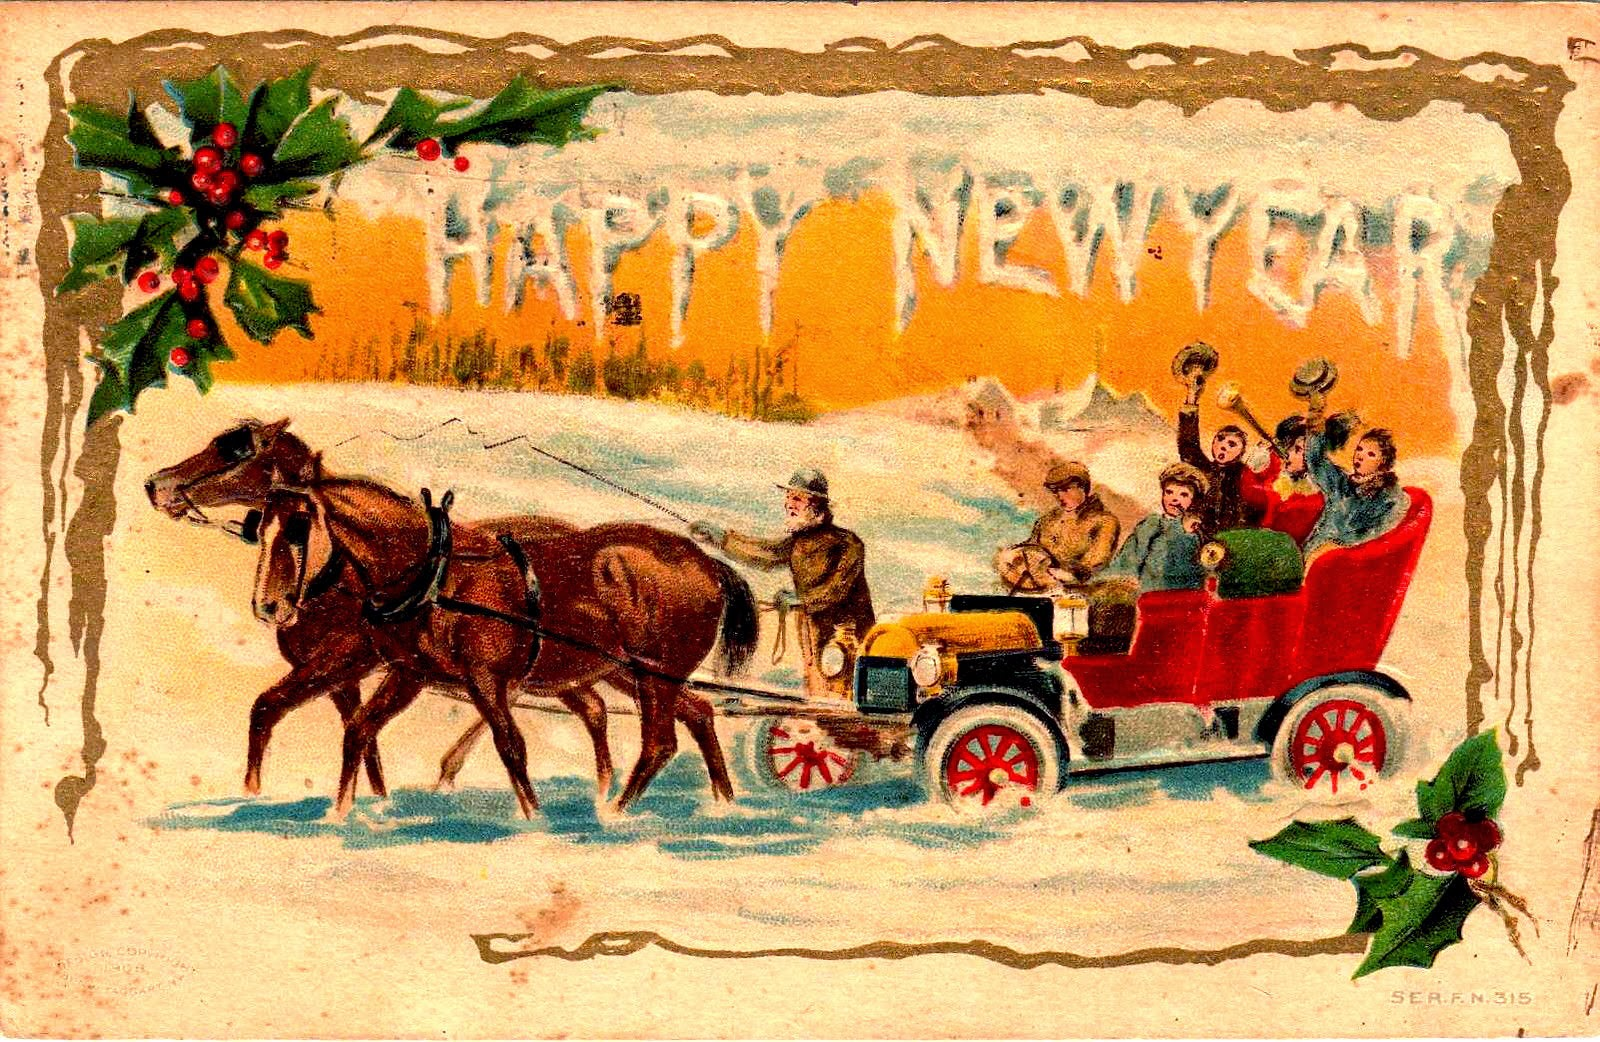 Happy New Year Horse Images 51